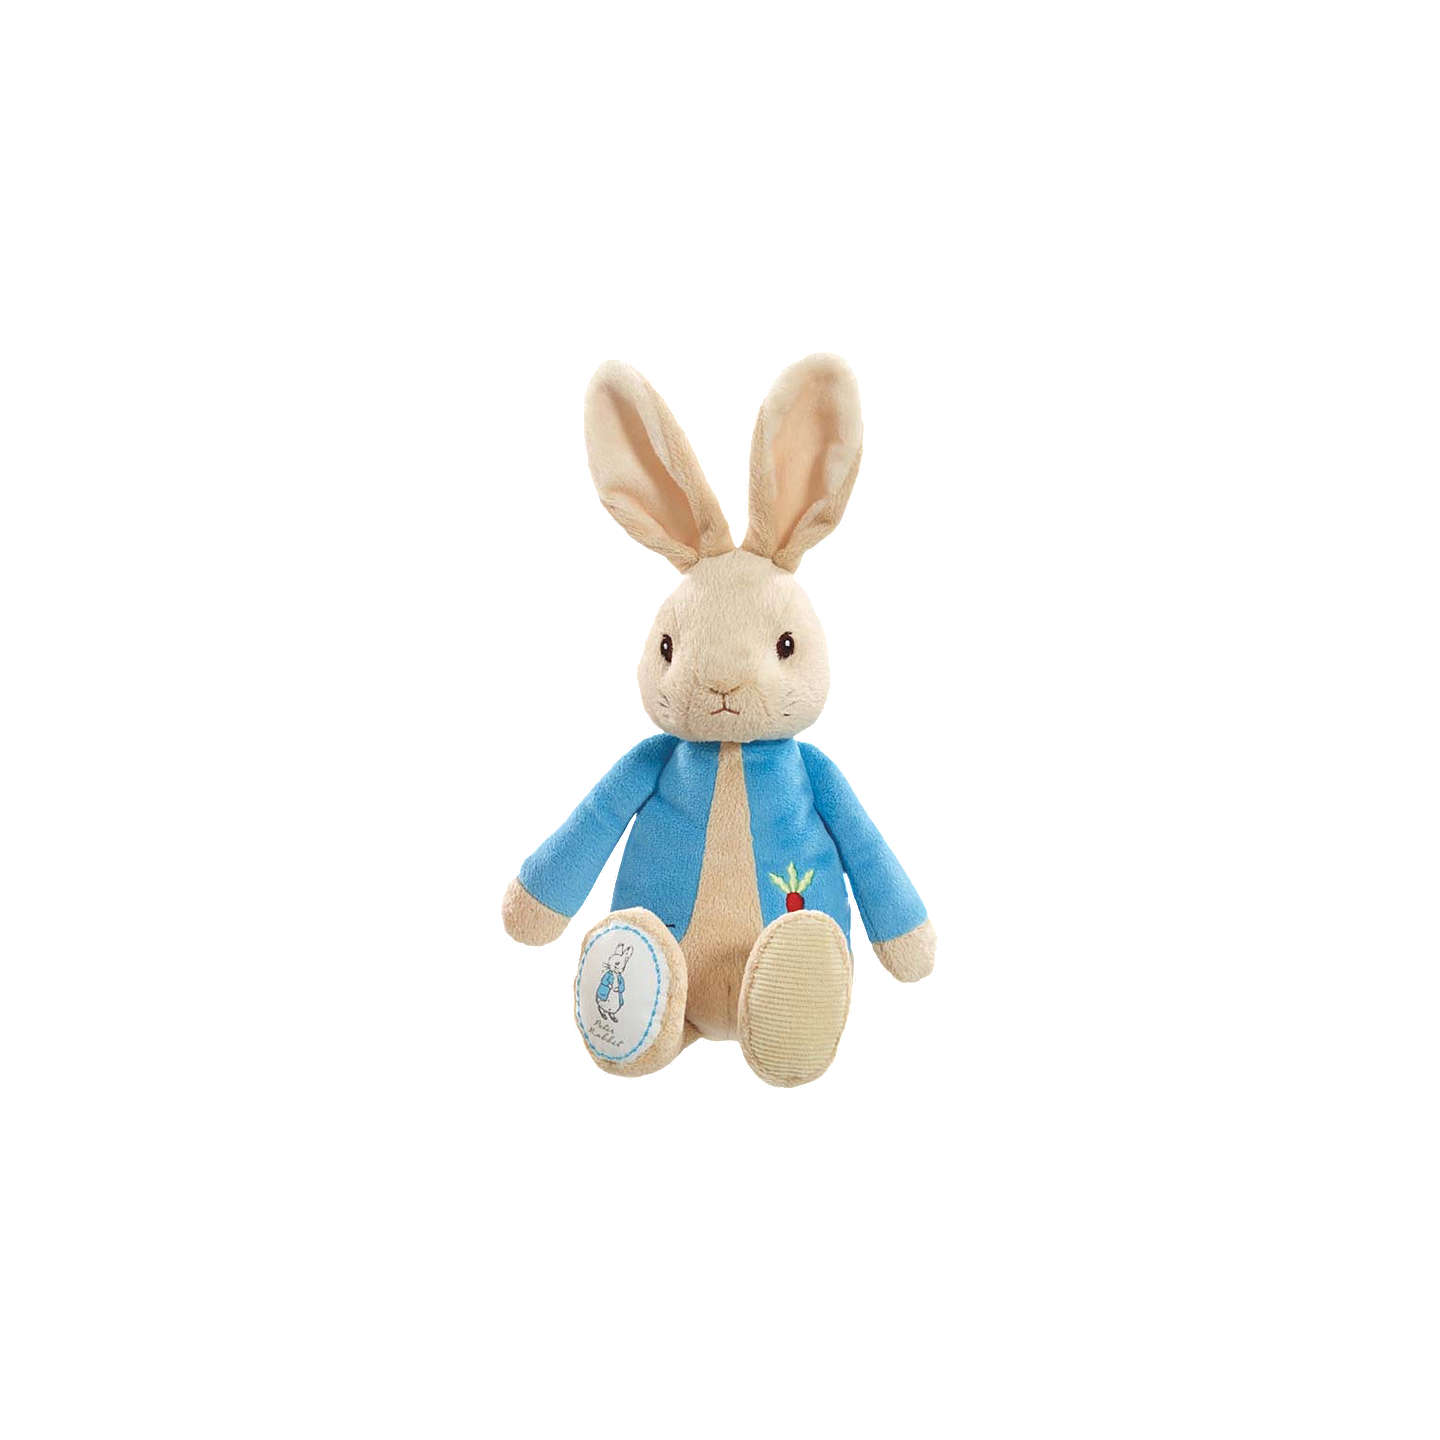 BuyBeatrix Potter My First Peter Rabbit Soft Toy Online at johnlewis.com